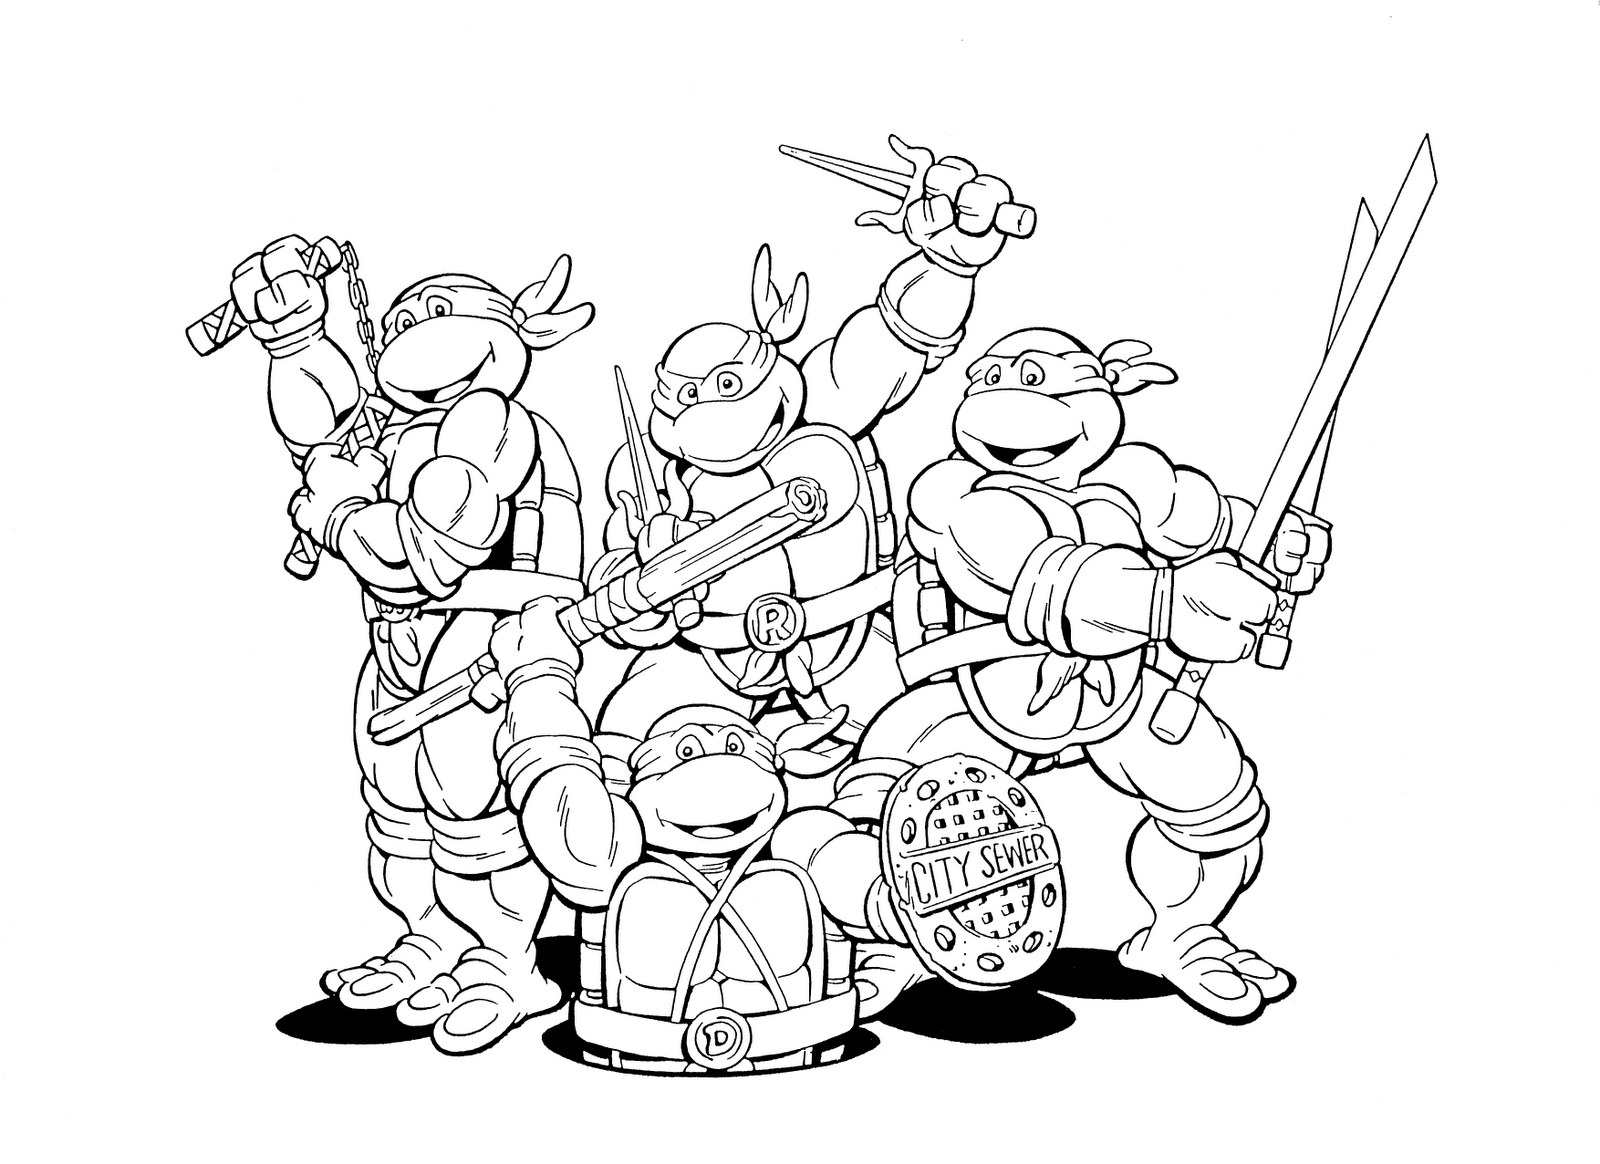 Teenage Mutant Ninja Turtles Coloring Pages (19 Pictures ...